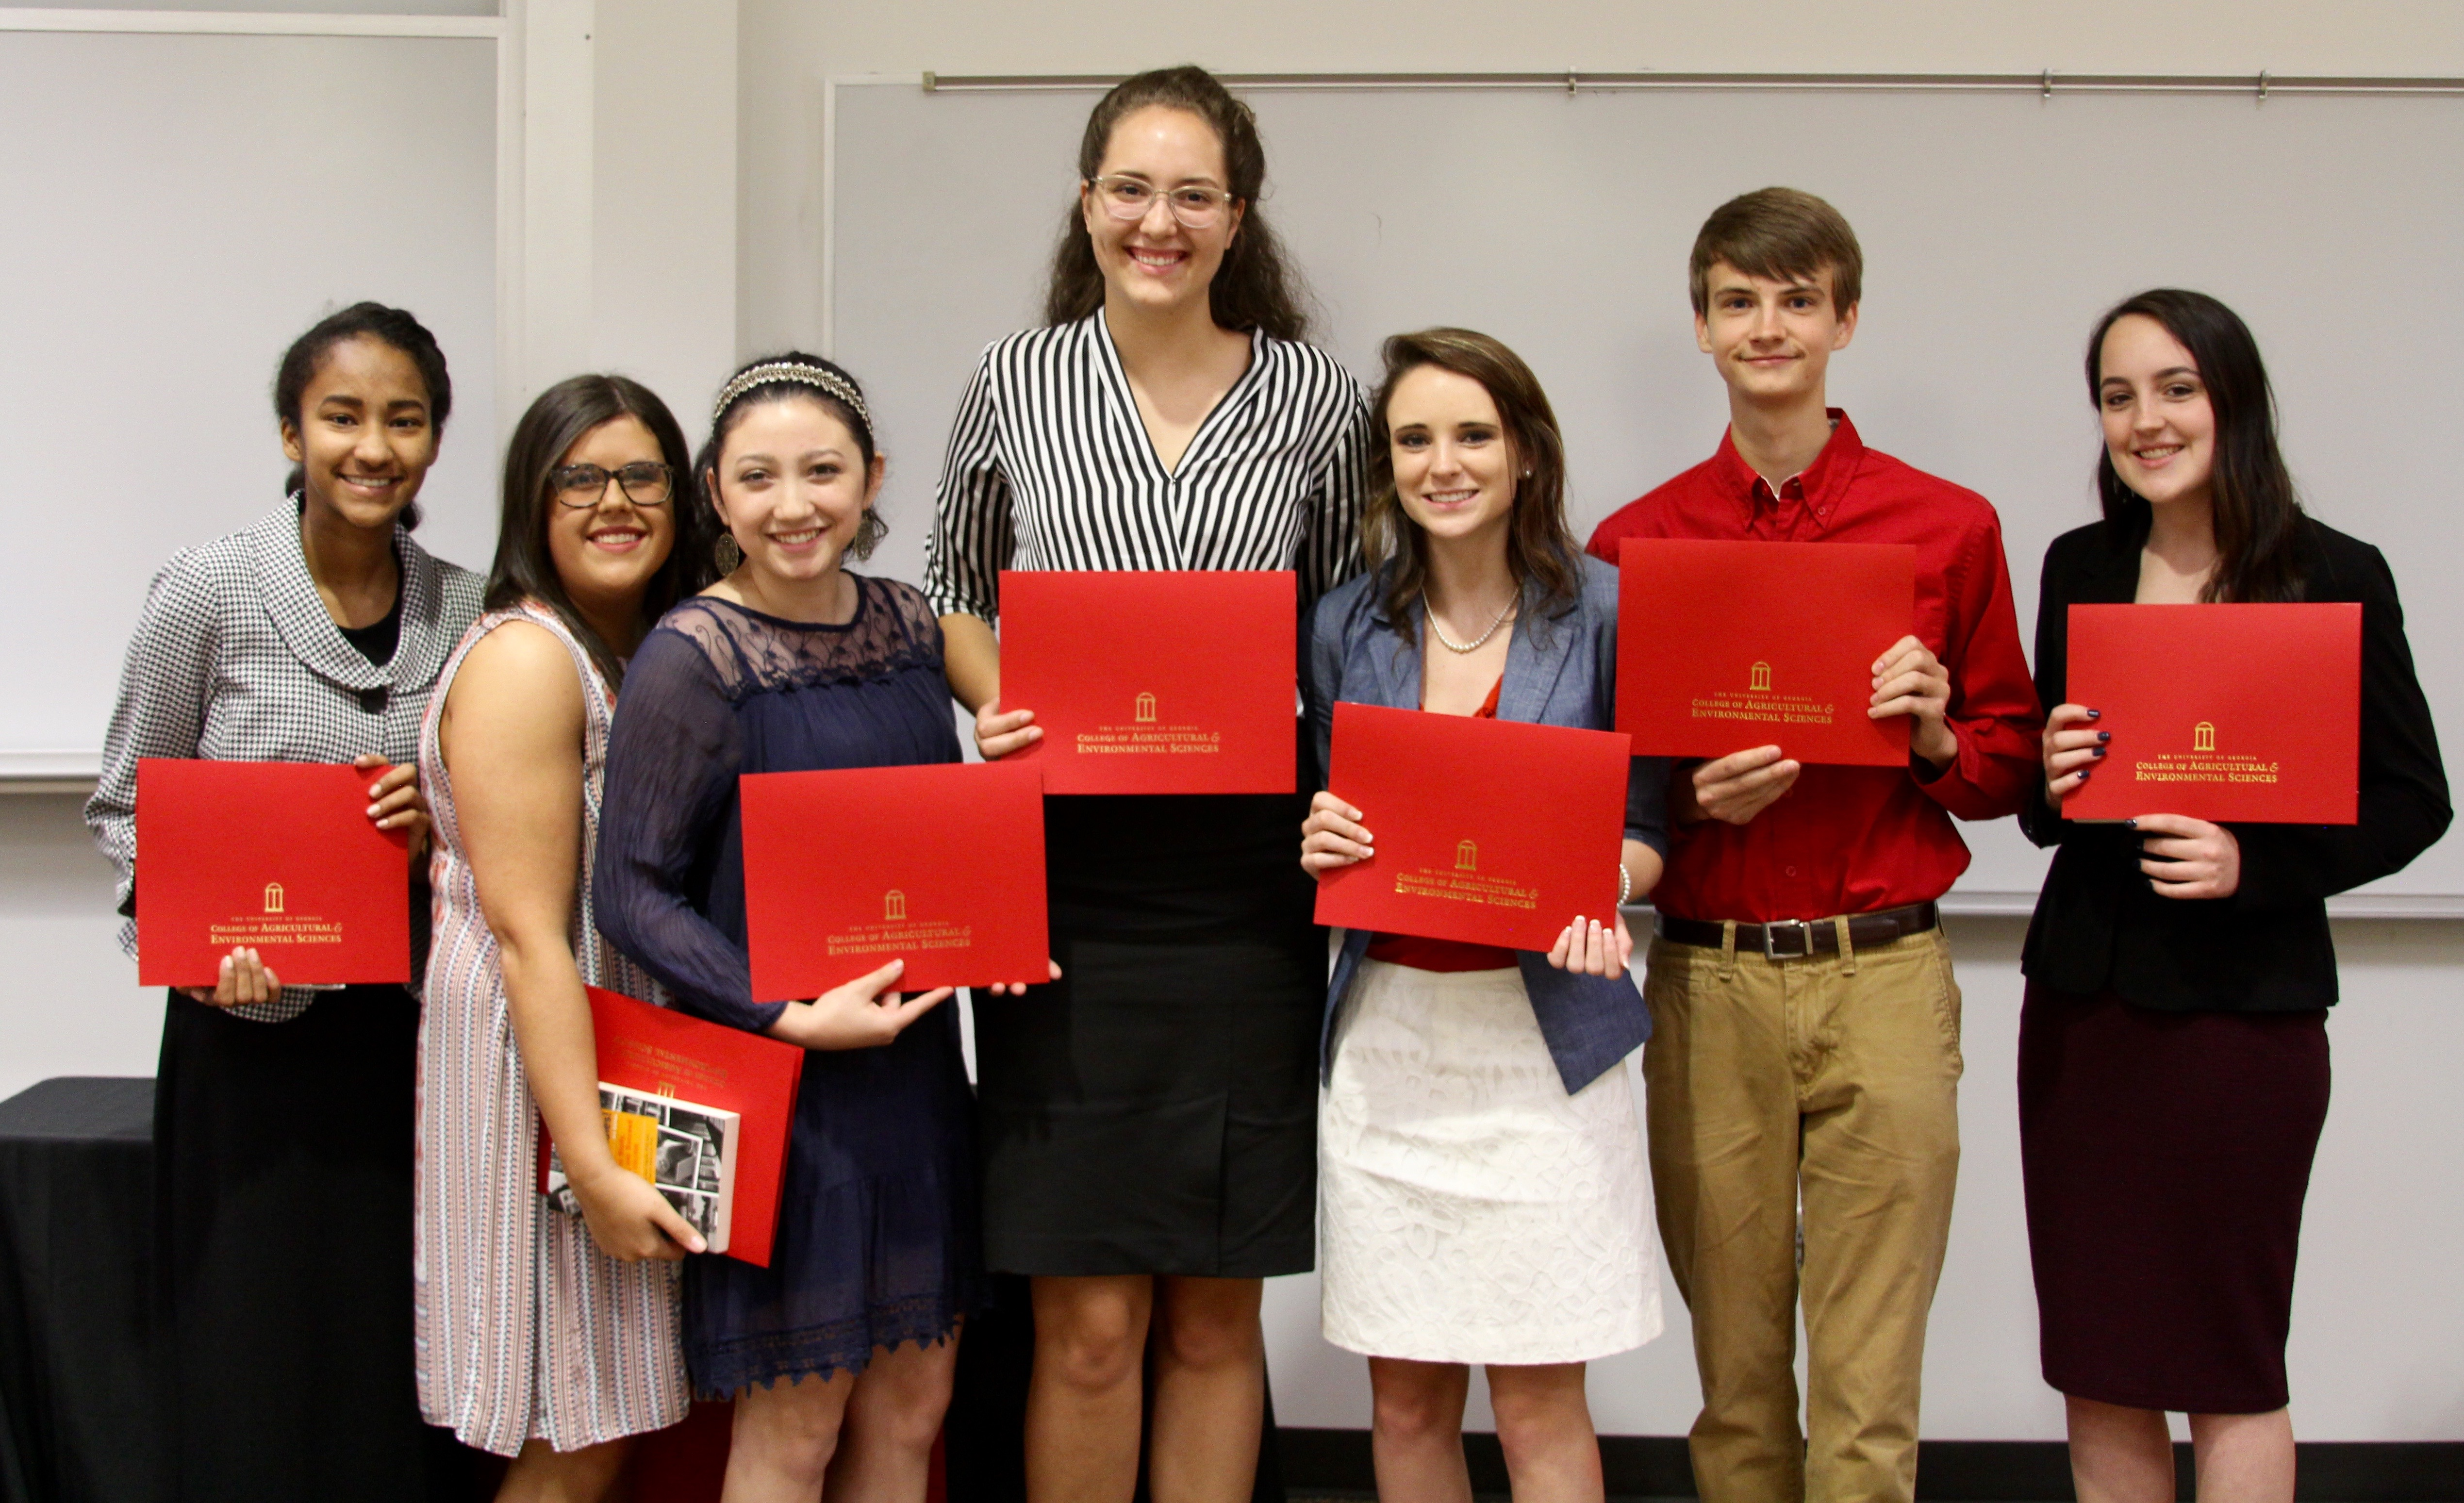 The inaugural class of the Pike County High School STEM Academy at the University of Georgia Griffin Campus included (l-r) Talisa Watts, Megan Pitts, Nikki Dodson, Taylor Thomas, Abigail Chasteen, Dylan Blohm and Courtney Bagwell.